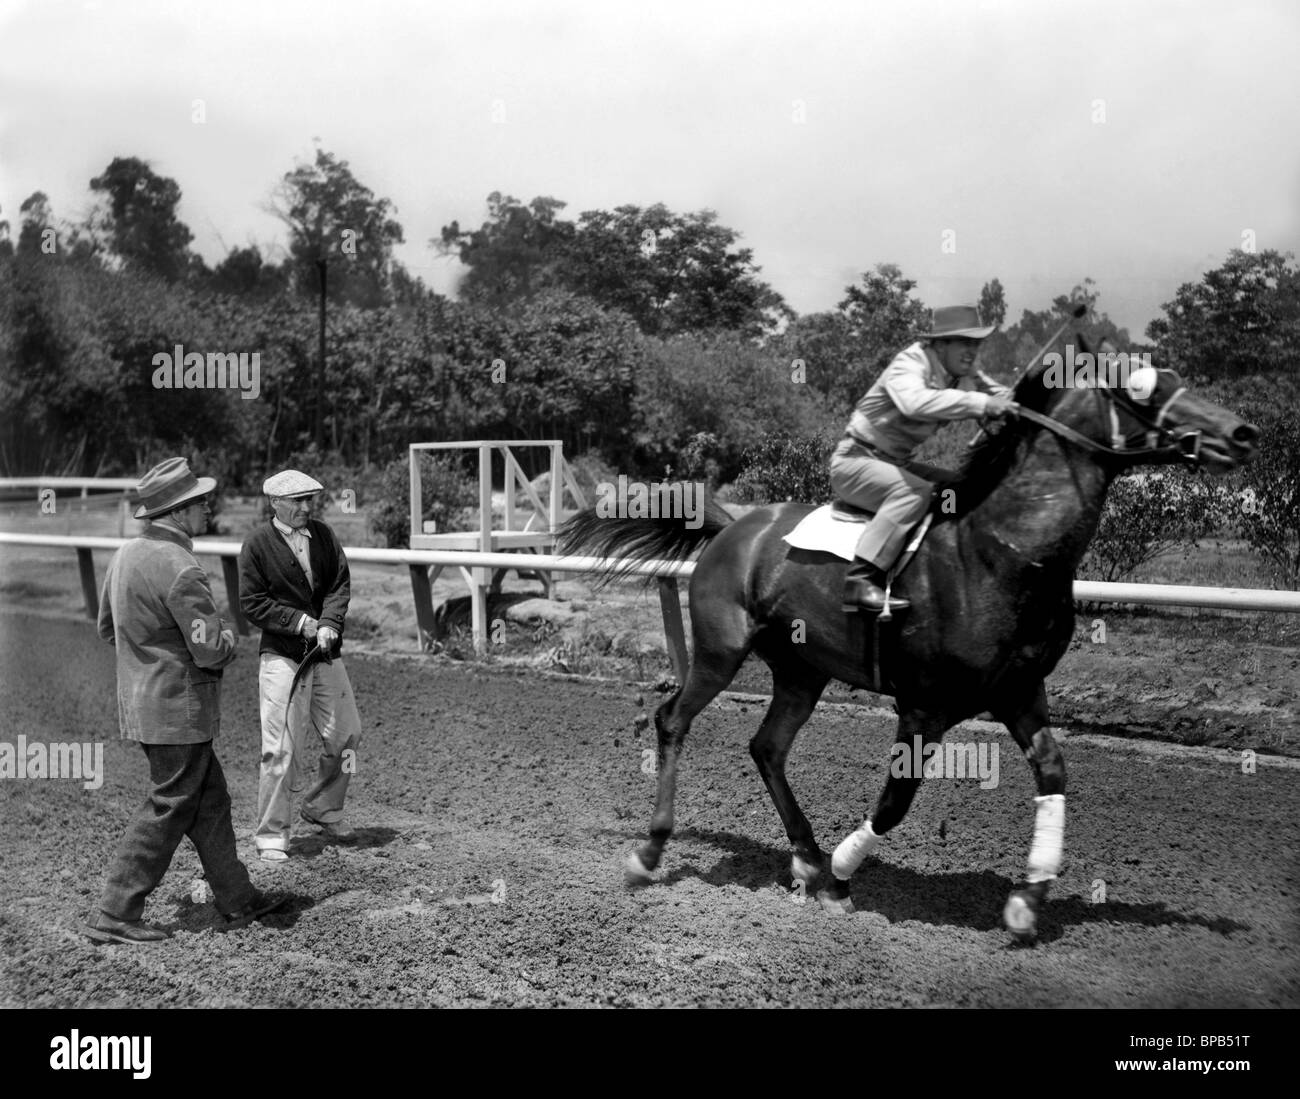 SEABISCUIT THE STORY OF SEABISCUIT (1949) - Stock Image